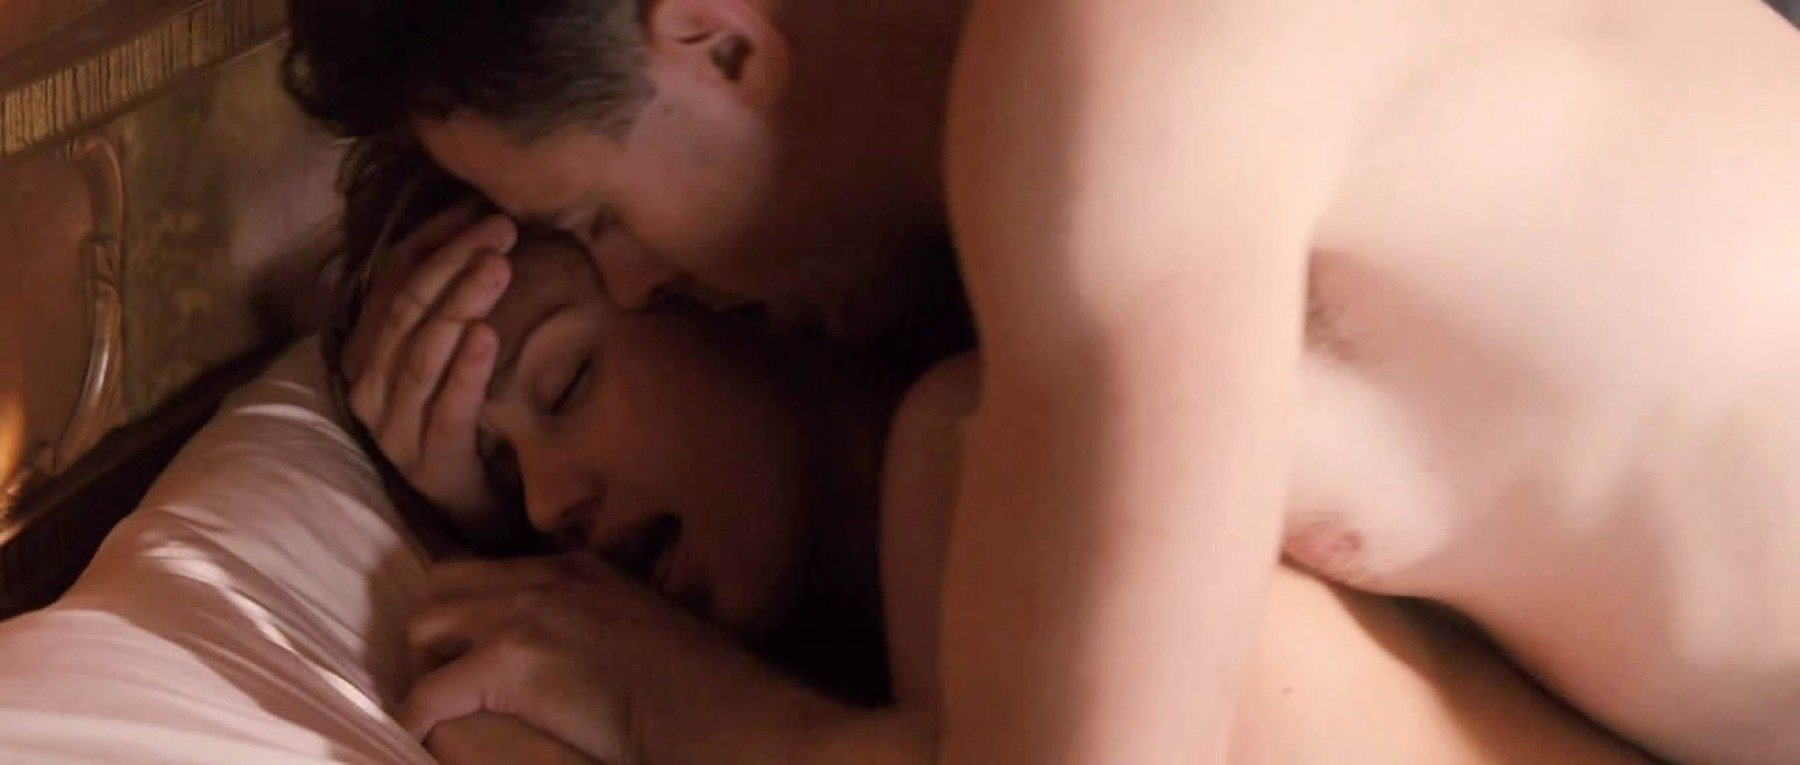 24.08.10 Jessica Alba bed scences in 'The Killer Inside Me' Pictured: Jessica Alba and Casey Affleck, Image: 77995024, License: Rights-managed, Restrictions: , Model Release: no, Credit line: Profimedia, Planet